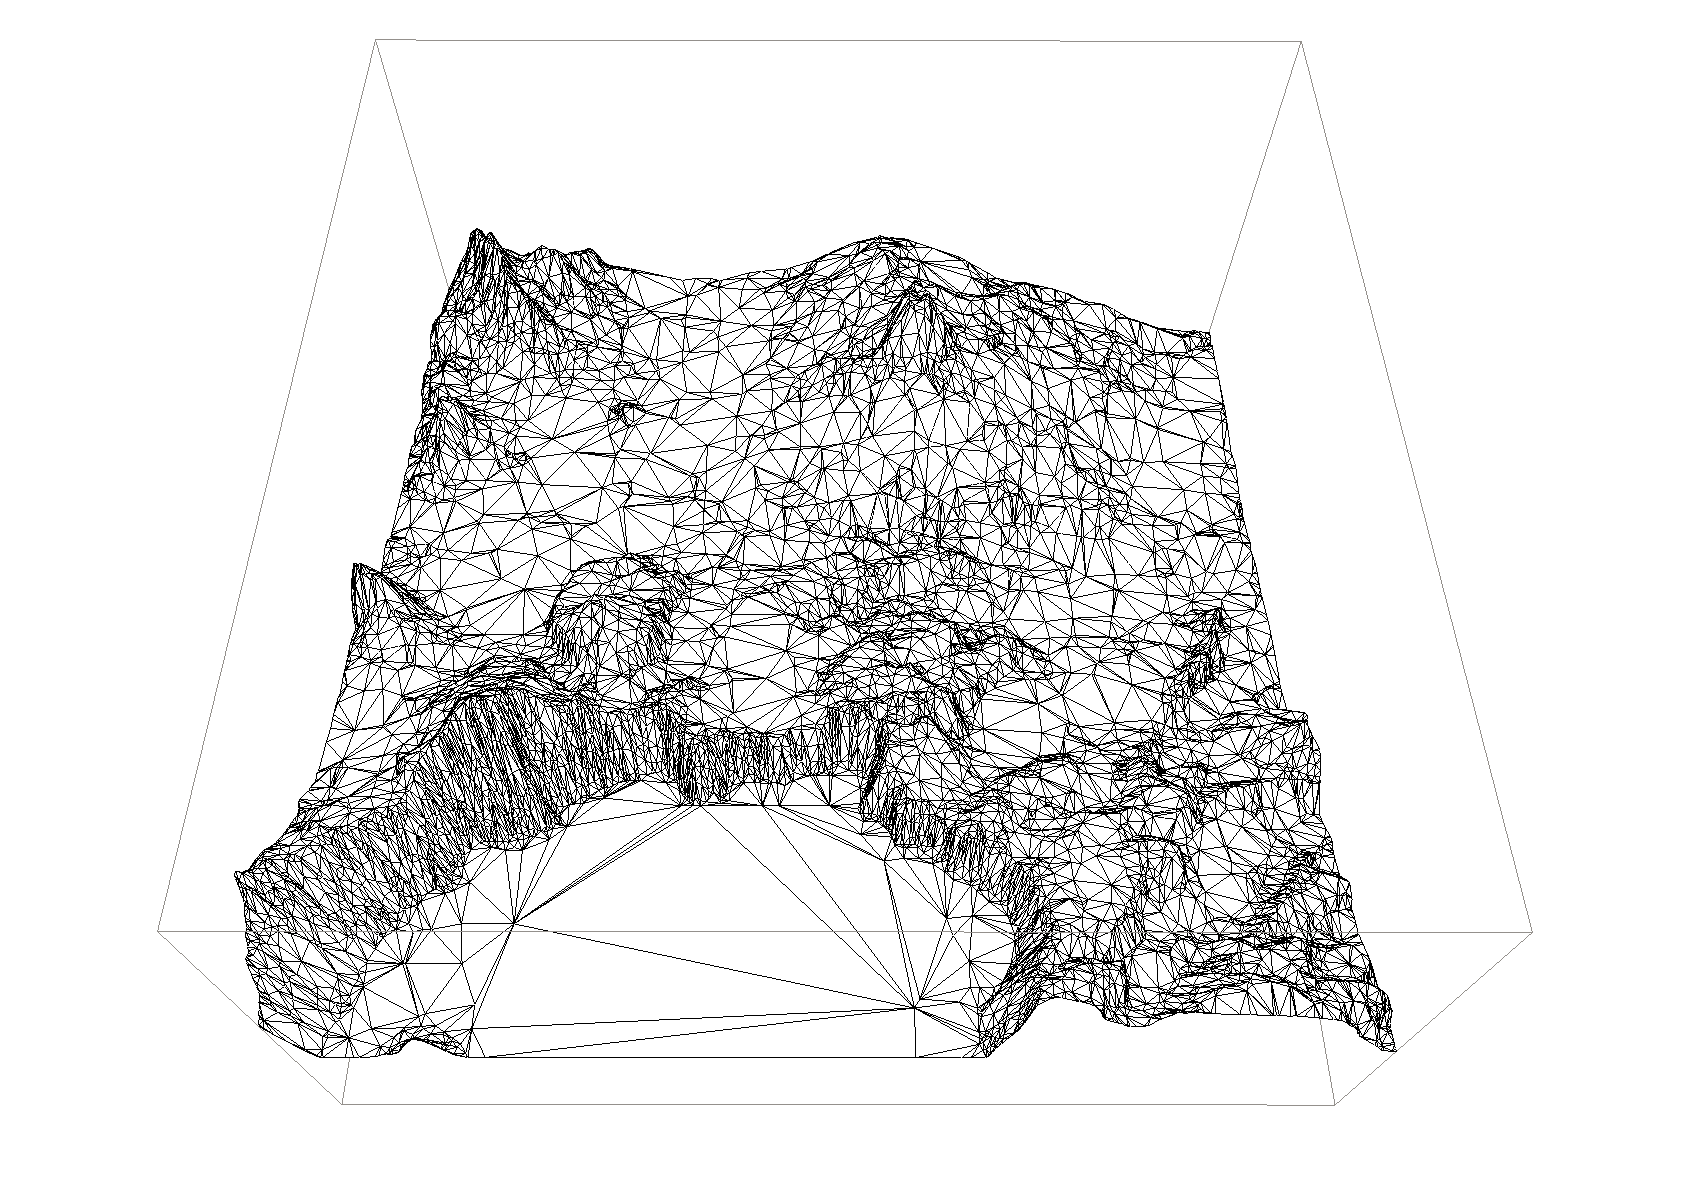 Visualizing large scale terrain with open source tools